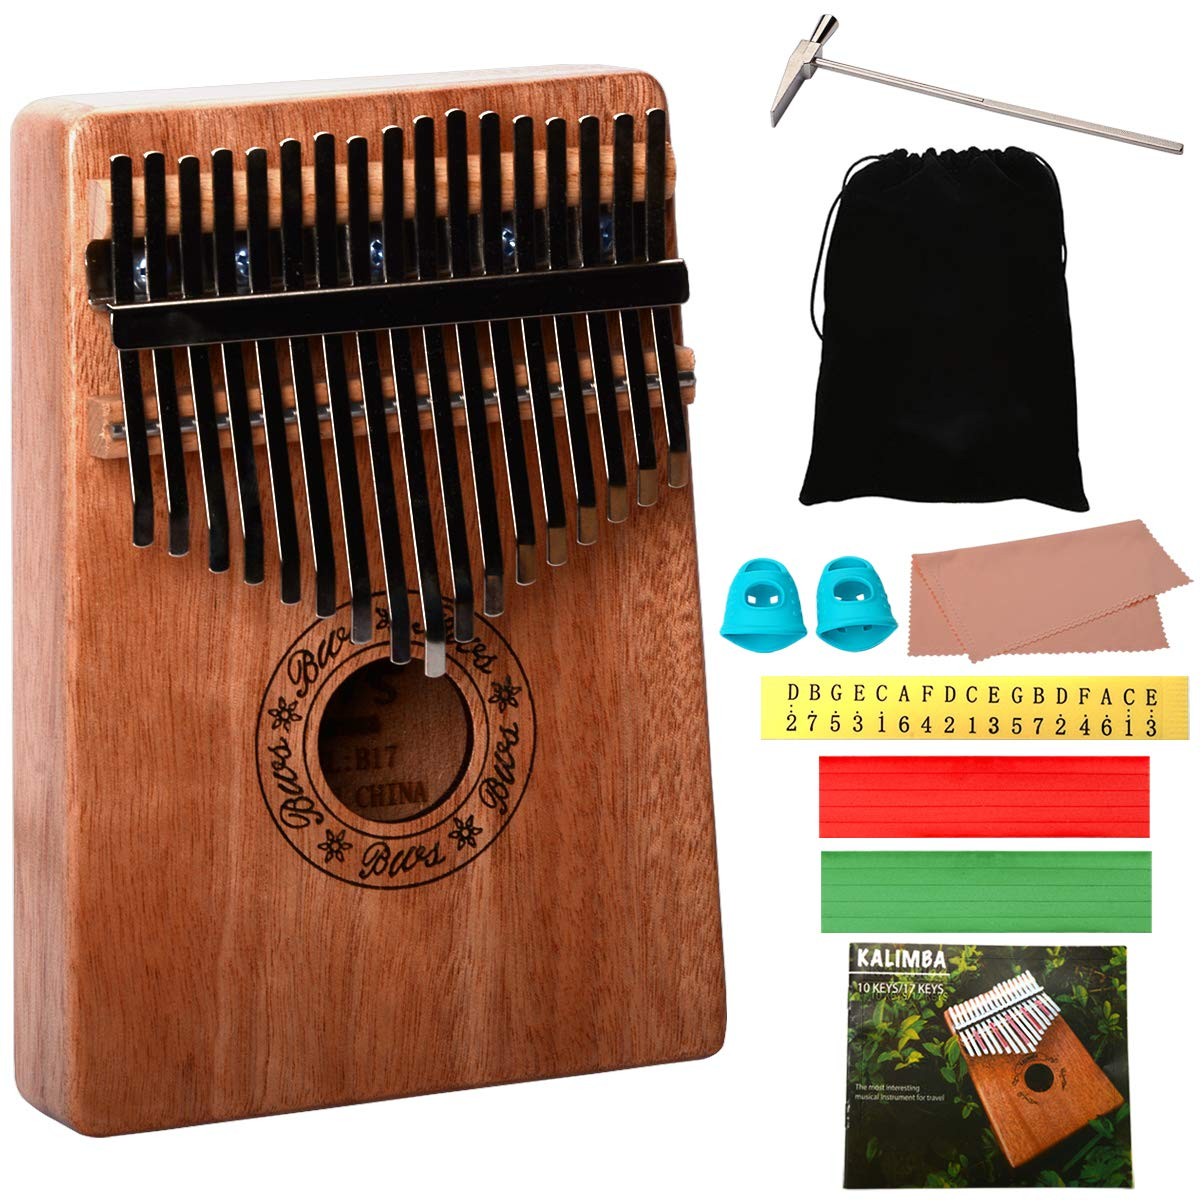 Kalimba 17 Keys Thumb Piano, CJRSLRB Mahogany Wood Finger Piano with Tune Hammer, Storage Protective Bag, Scale Sound Sticker, Study Instruction, Mbira Likembe for Kids Adult Beginners (Wood)